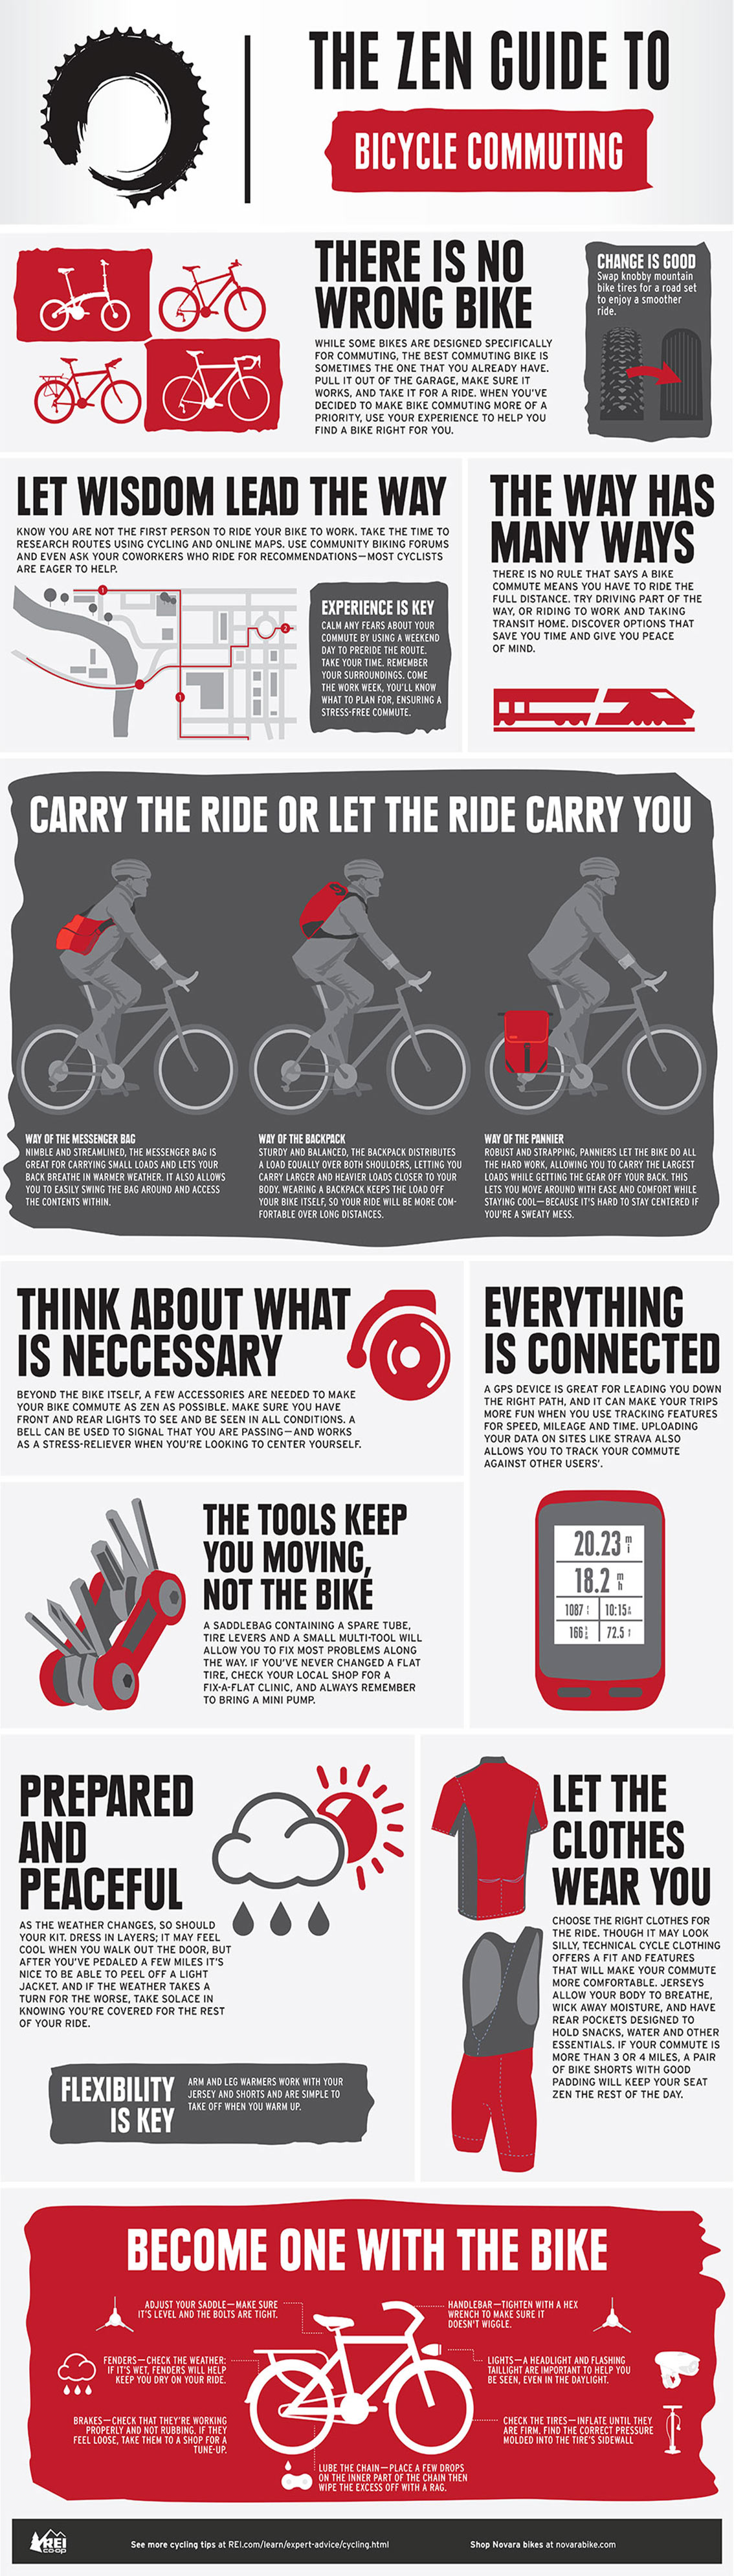 Zen Guide to Commuting to Work by Bike Infographic